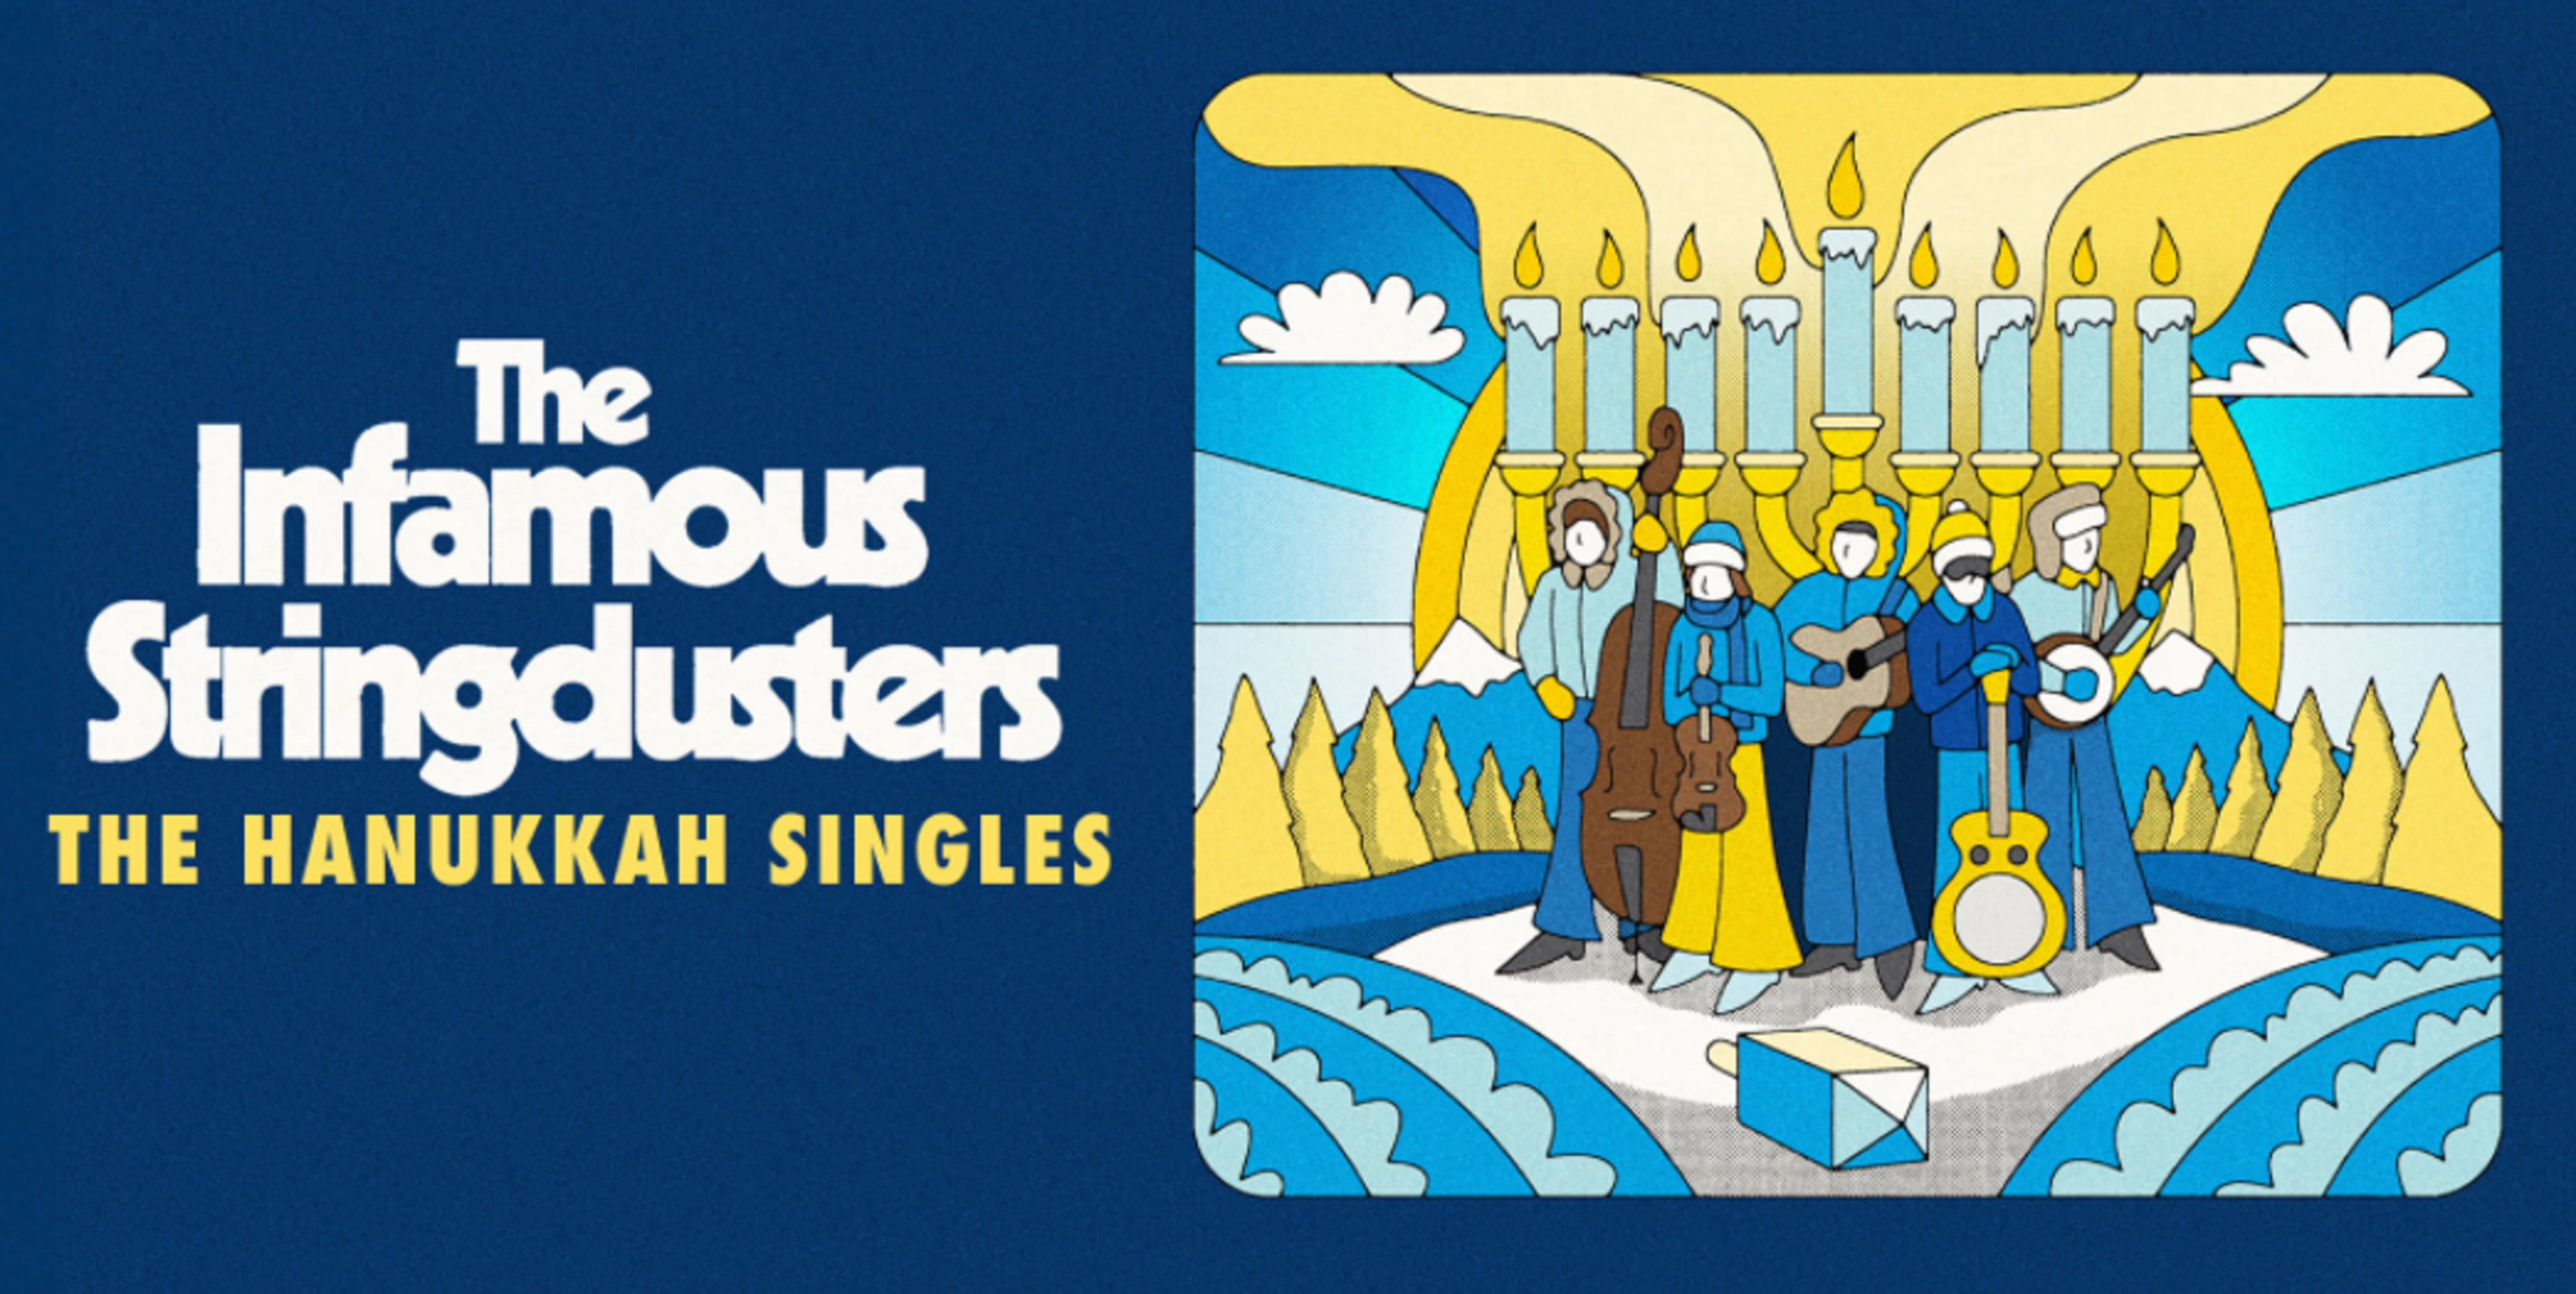 Celebrate Hanukkah with the Infamous Stringdusters